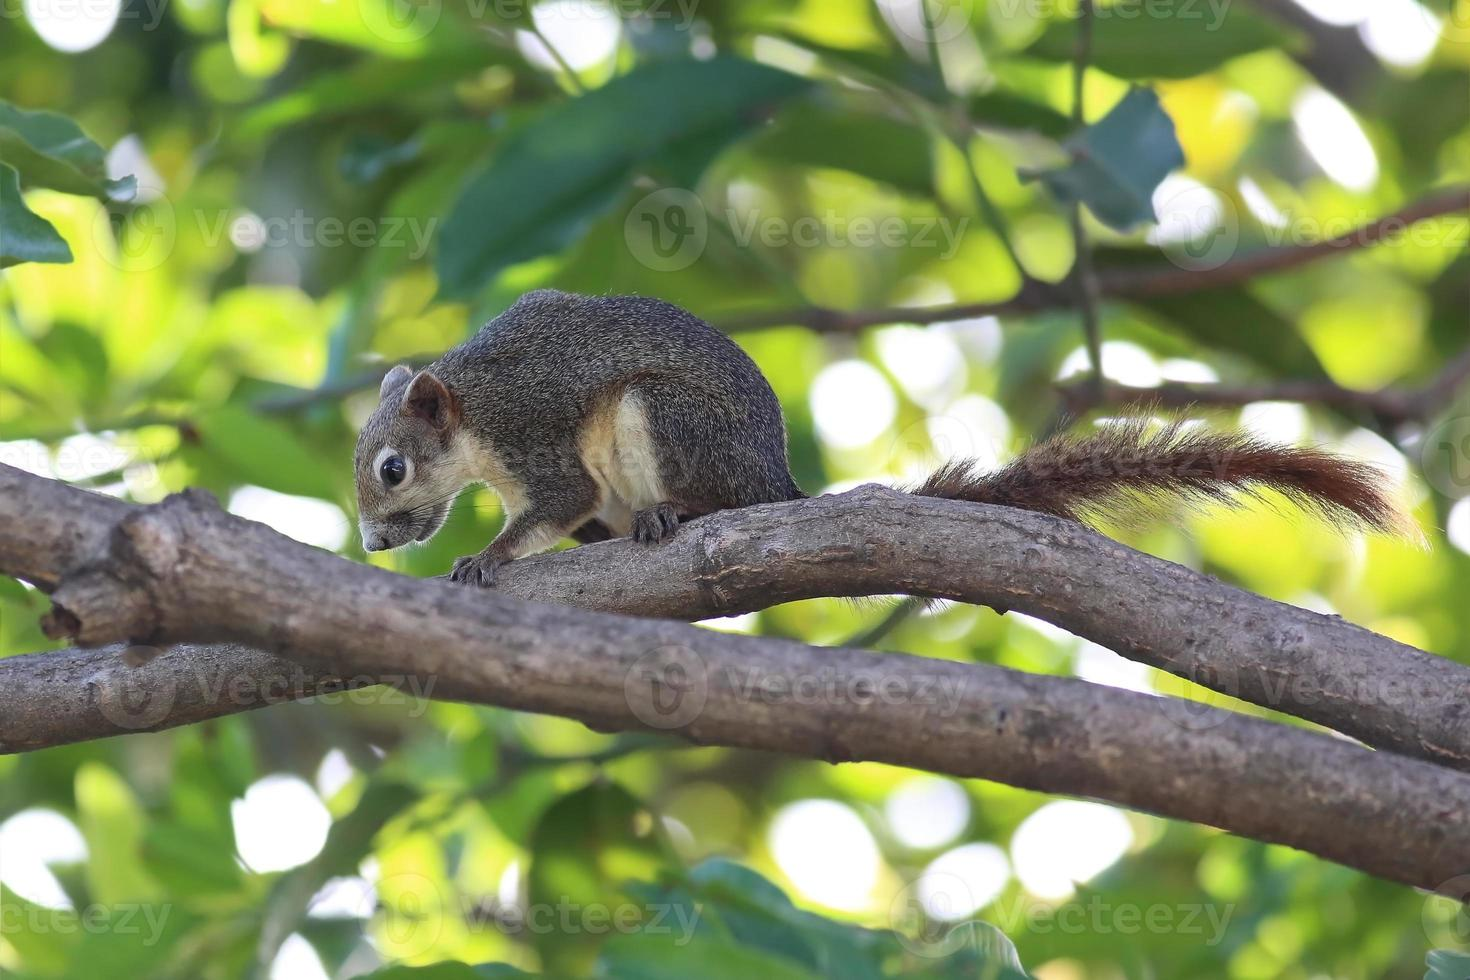 Squirrel on a tree branch photo